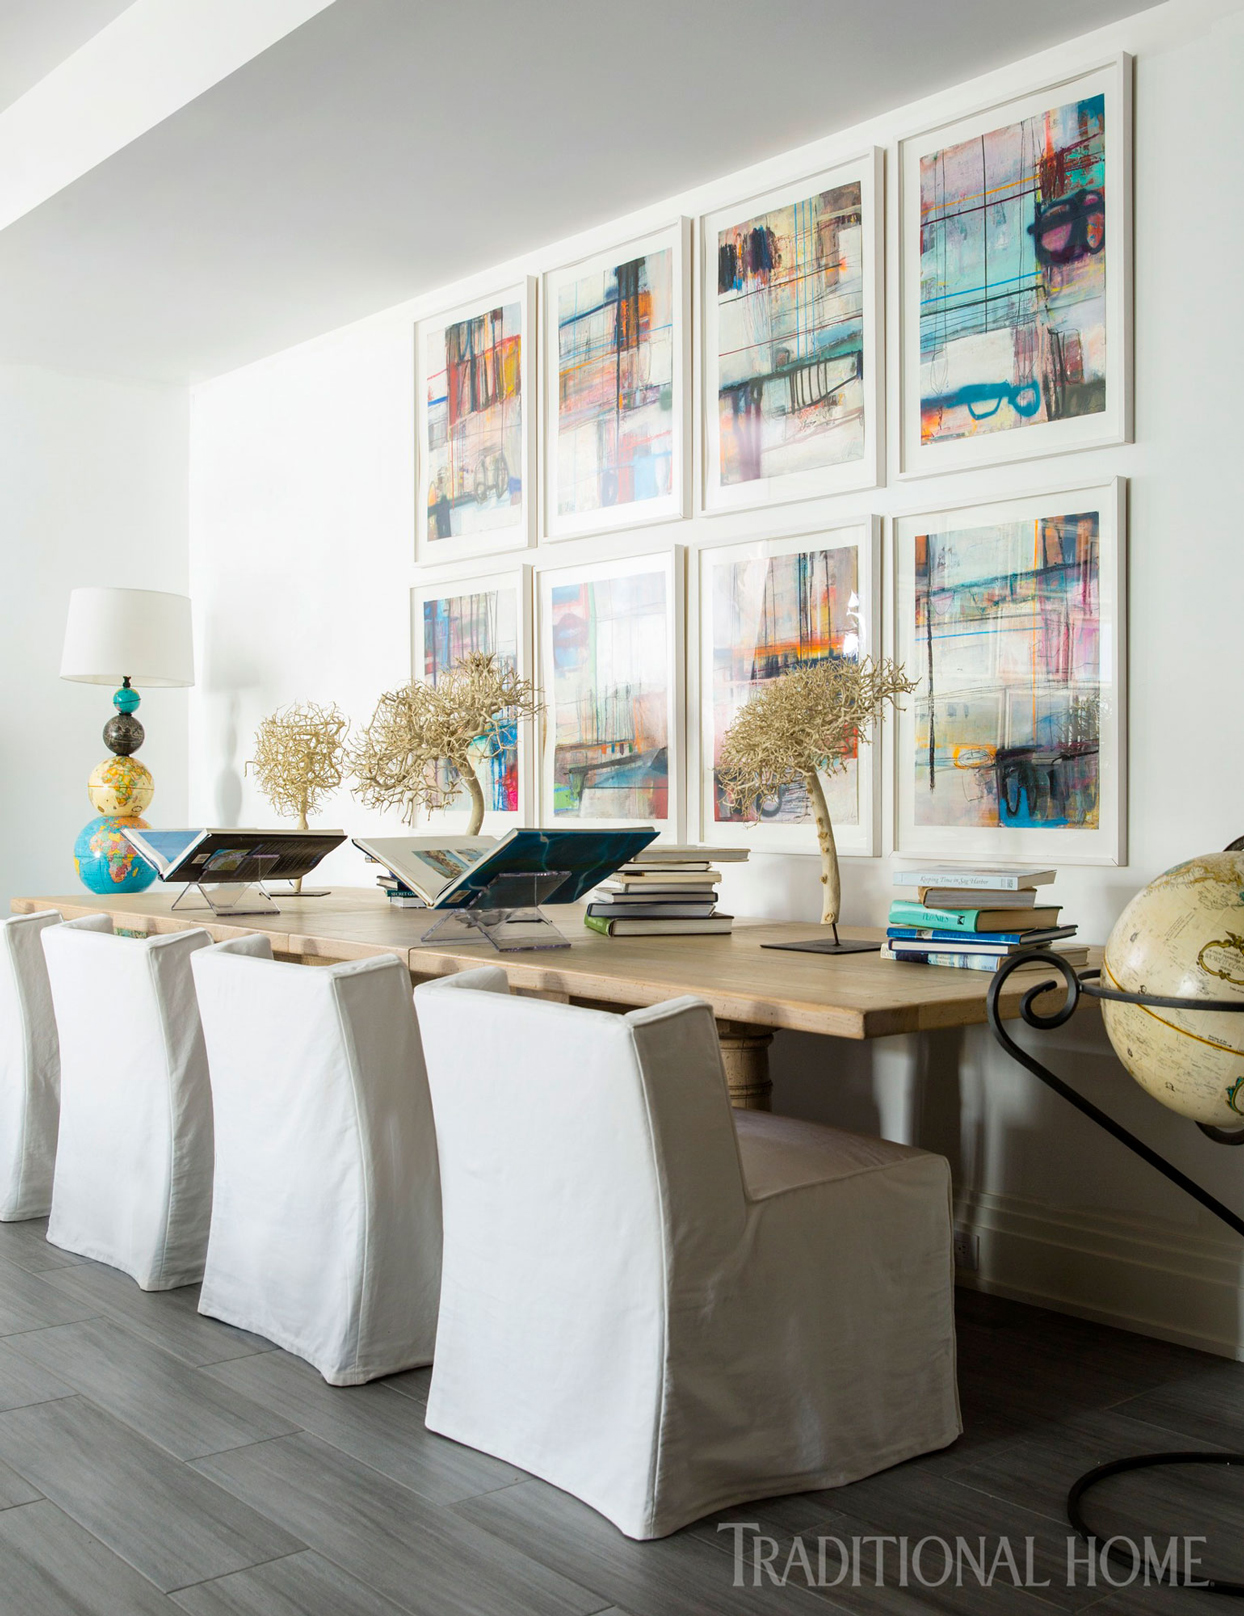 slipcovered-chairs-oak-dining-table-103193822